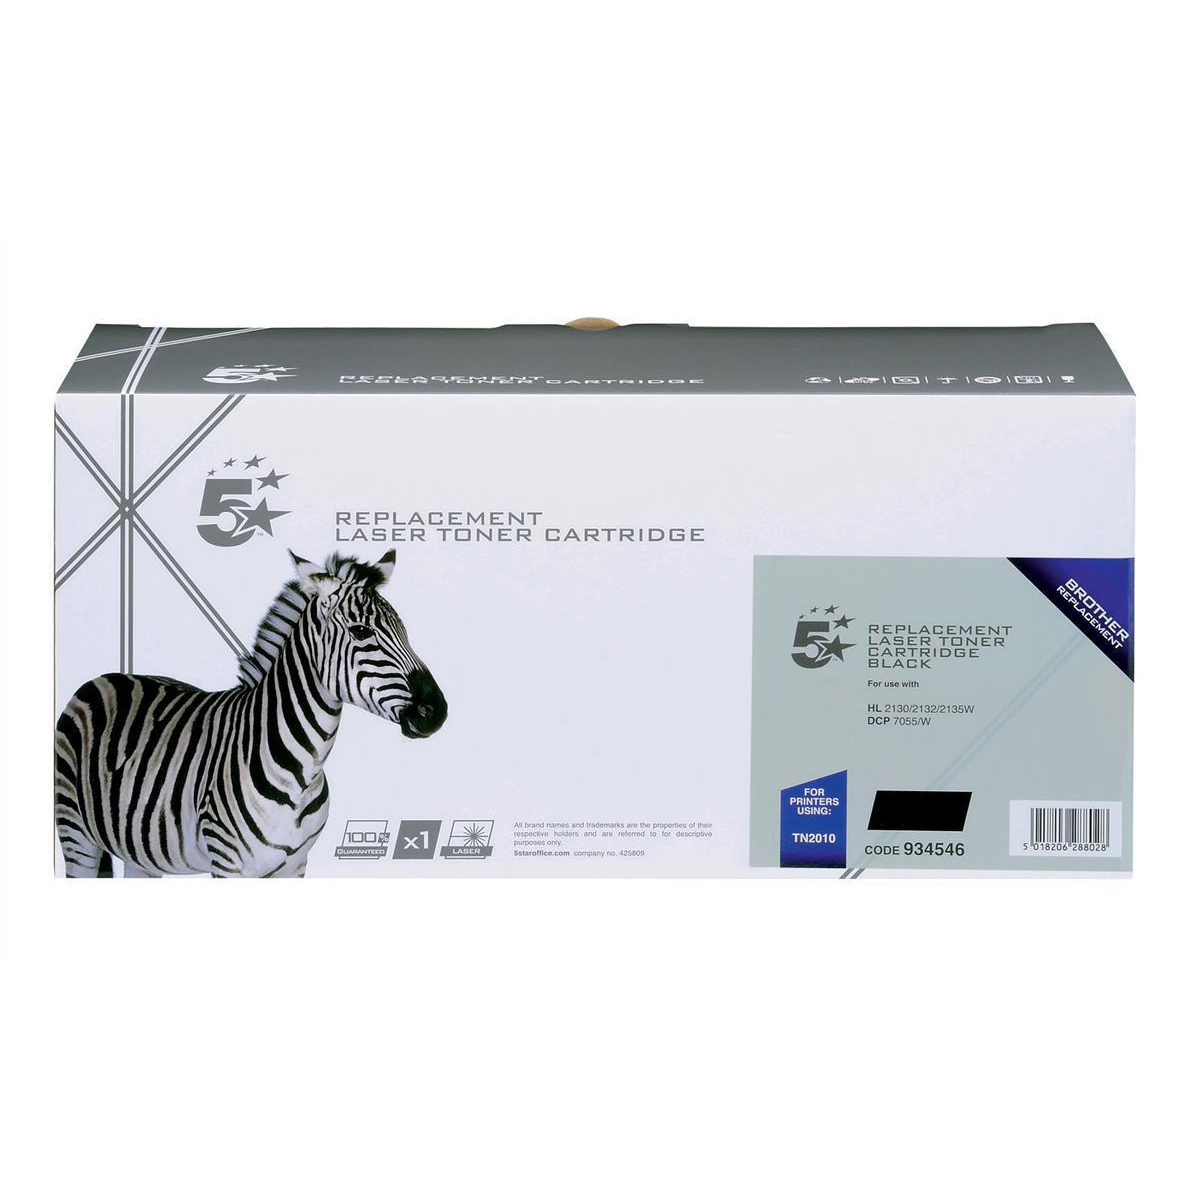 Laser Toner Cartridges 5 Star Office Remanufactured Laser Toner Cartridge Page Life 1000pp Black Brother TN2010 Alternative